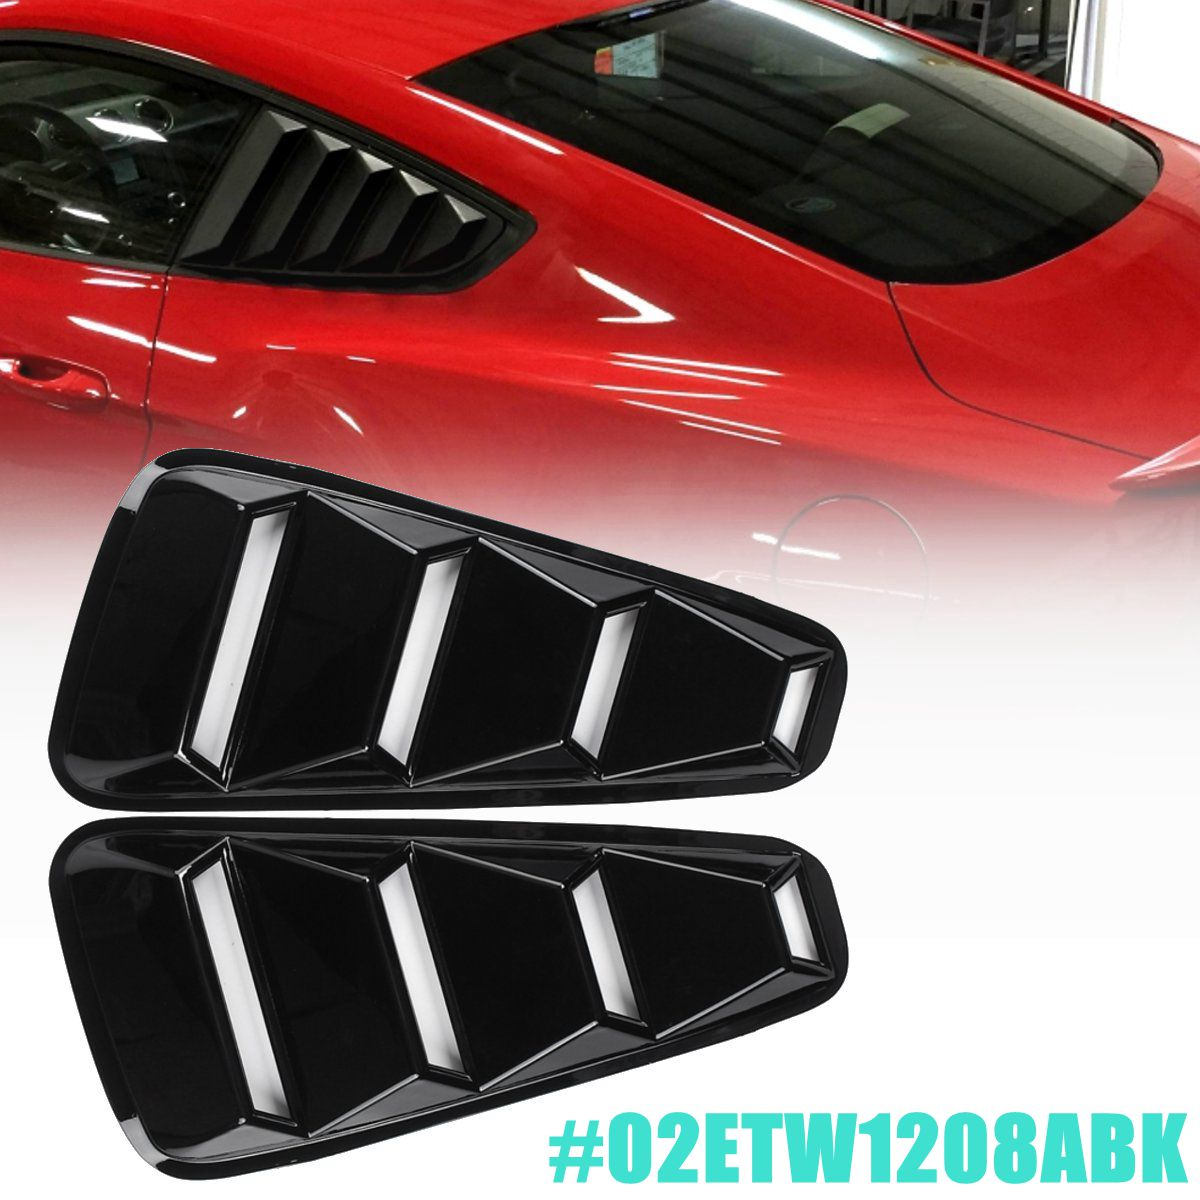 Gloss Black 14 Quarter Side Window Louver Vent Cover For Ford for Mustang 2005 2006 2007 2008 2009 2010 2011 2012 2013 2014